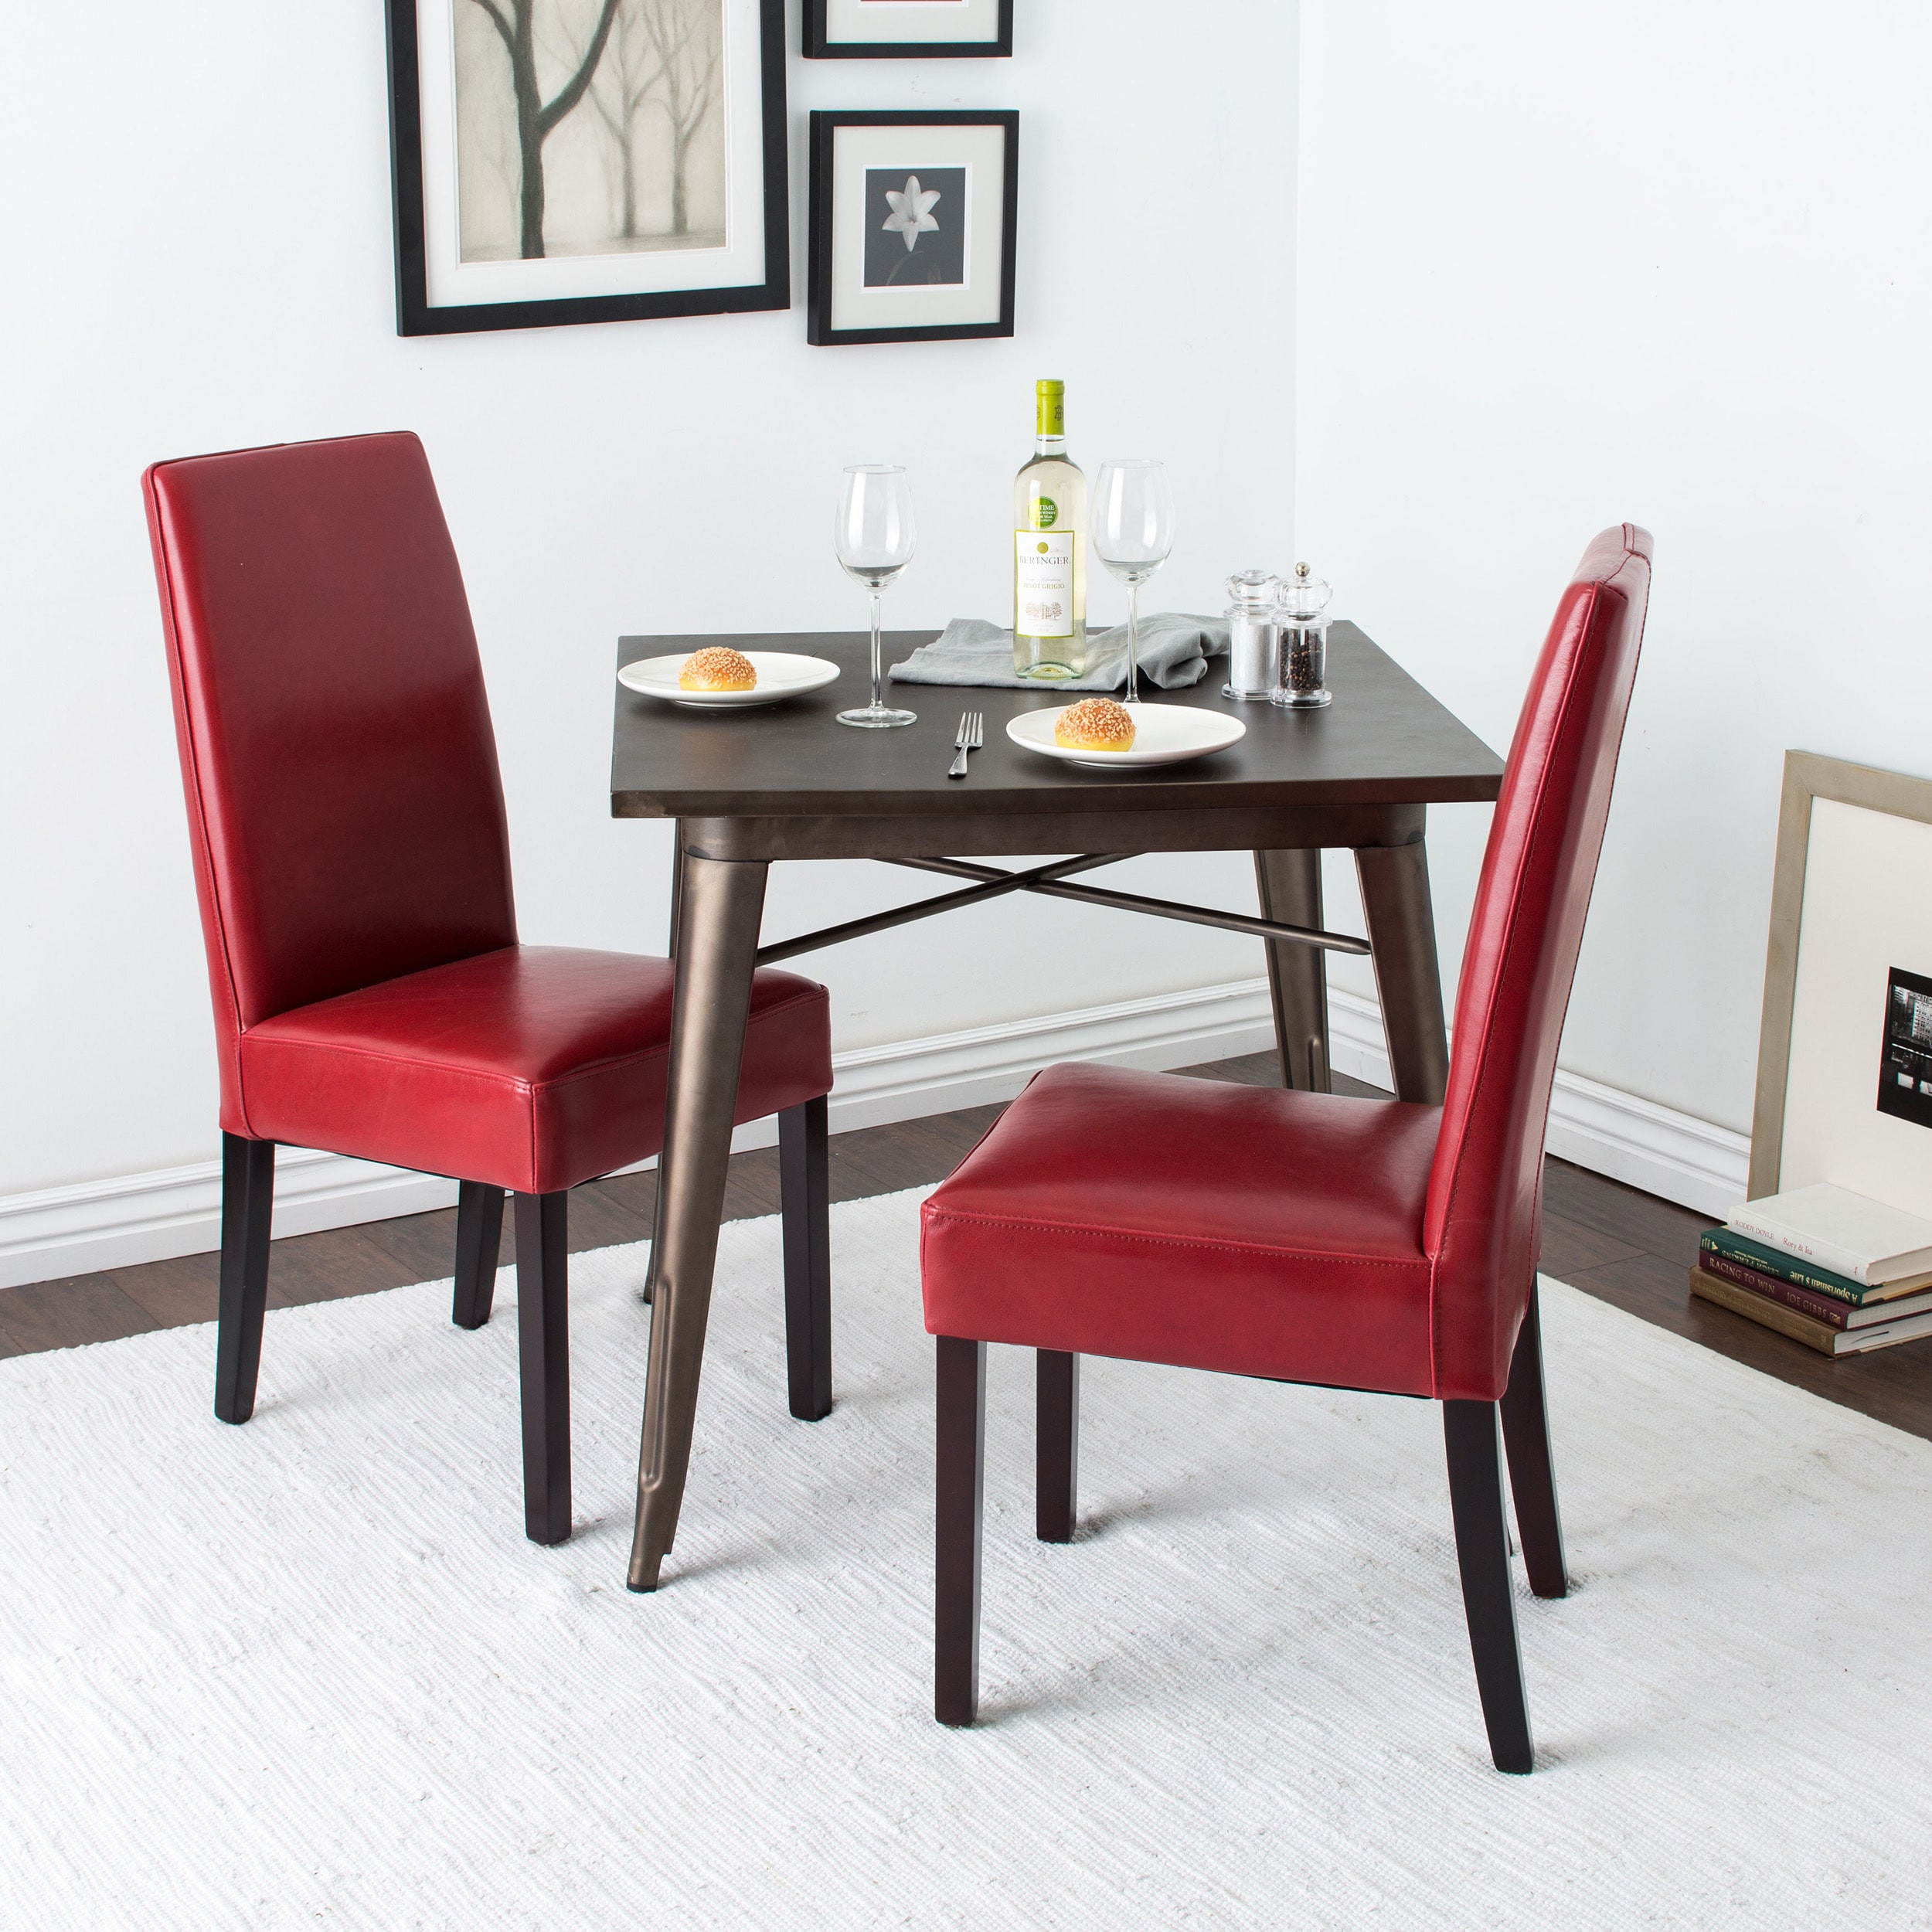 Red Leather Dining Room Chairs Leather Dining Chairs Burnt Red Set Of 2